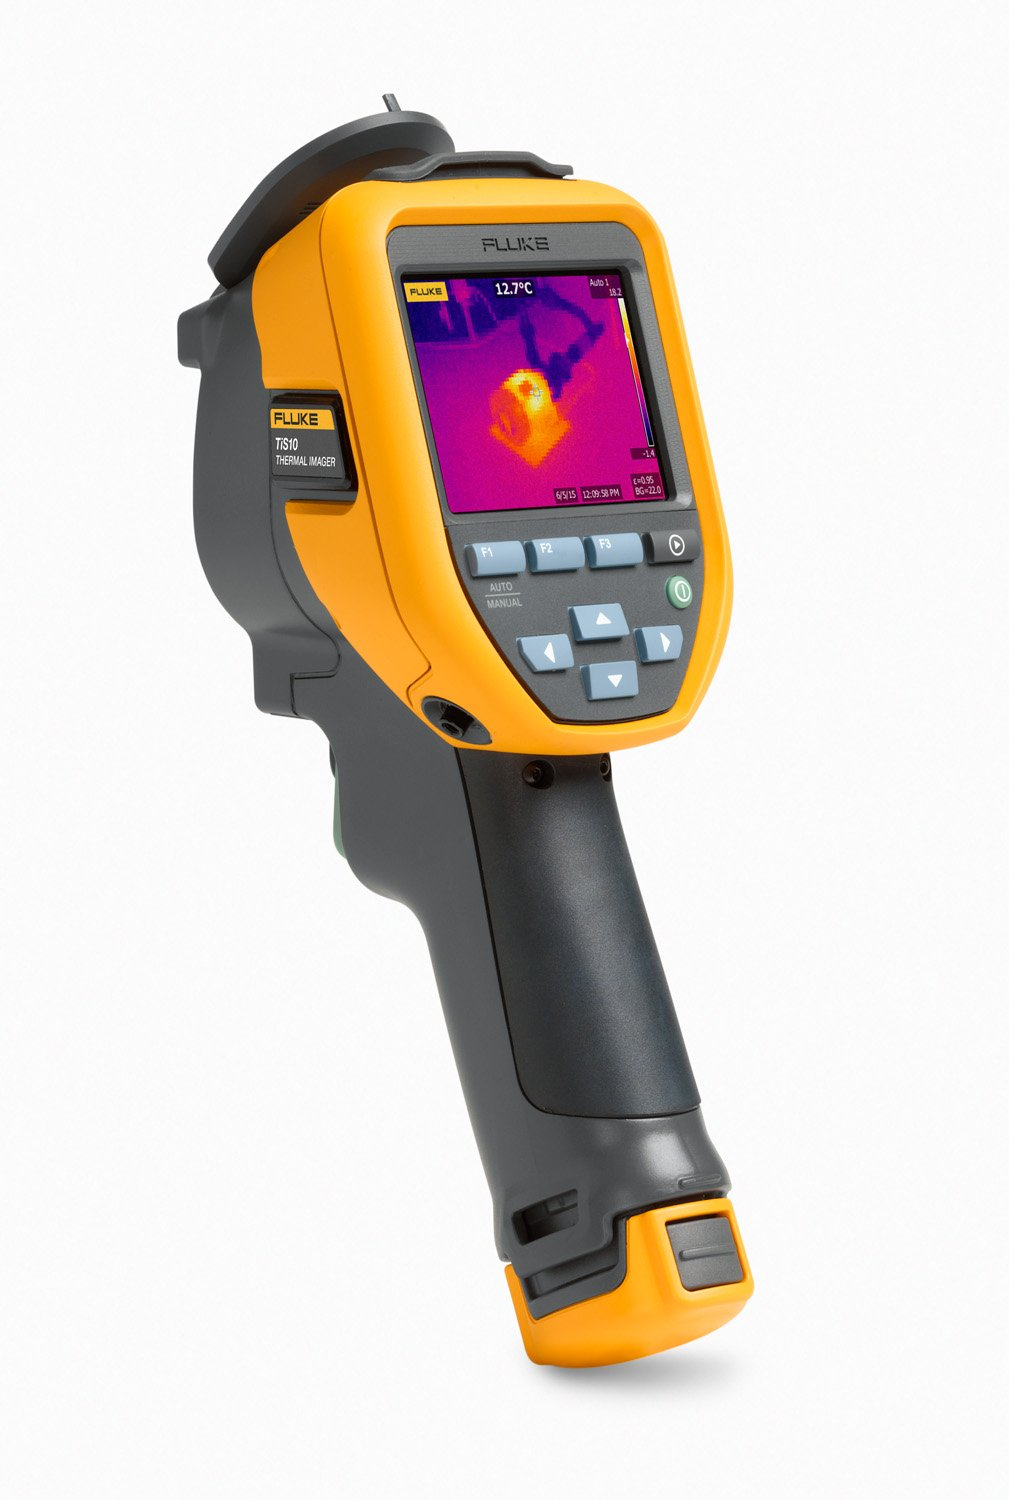 Fluke Tis10 9hz Thermal Infrared Camera Fixed Focus Hot Water System Further Imager On Wiring Diagram For 80x60 Resolution Industrial Scientific